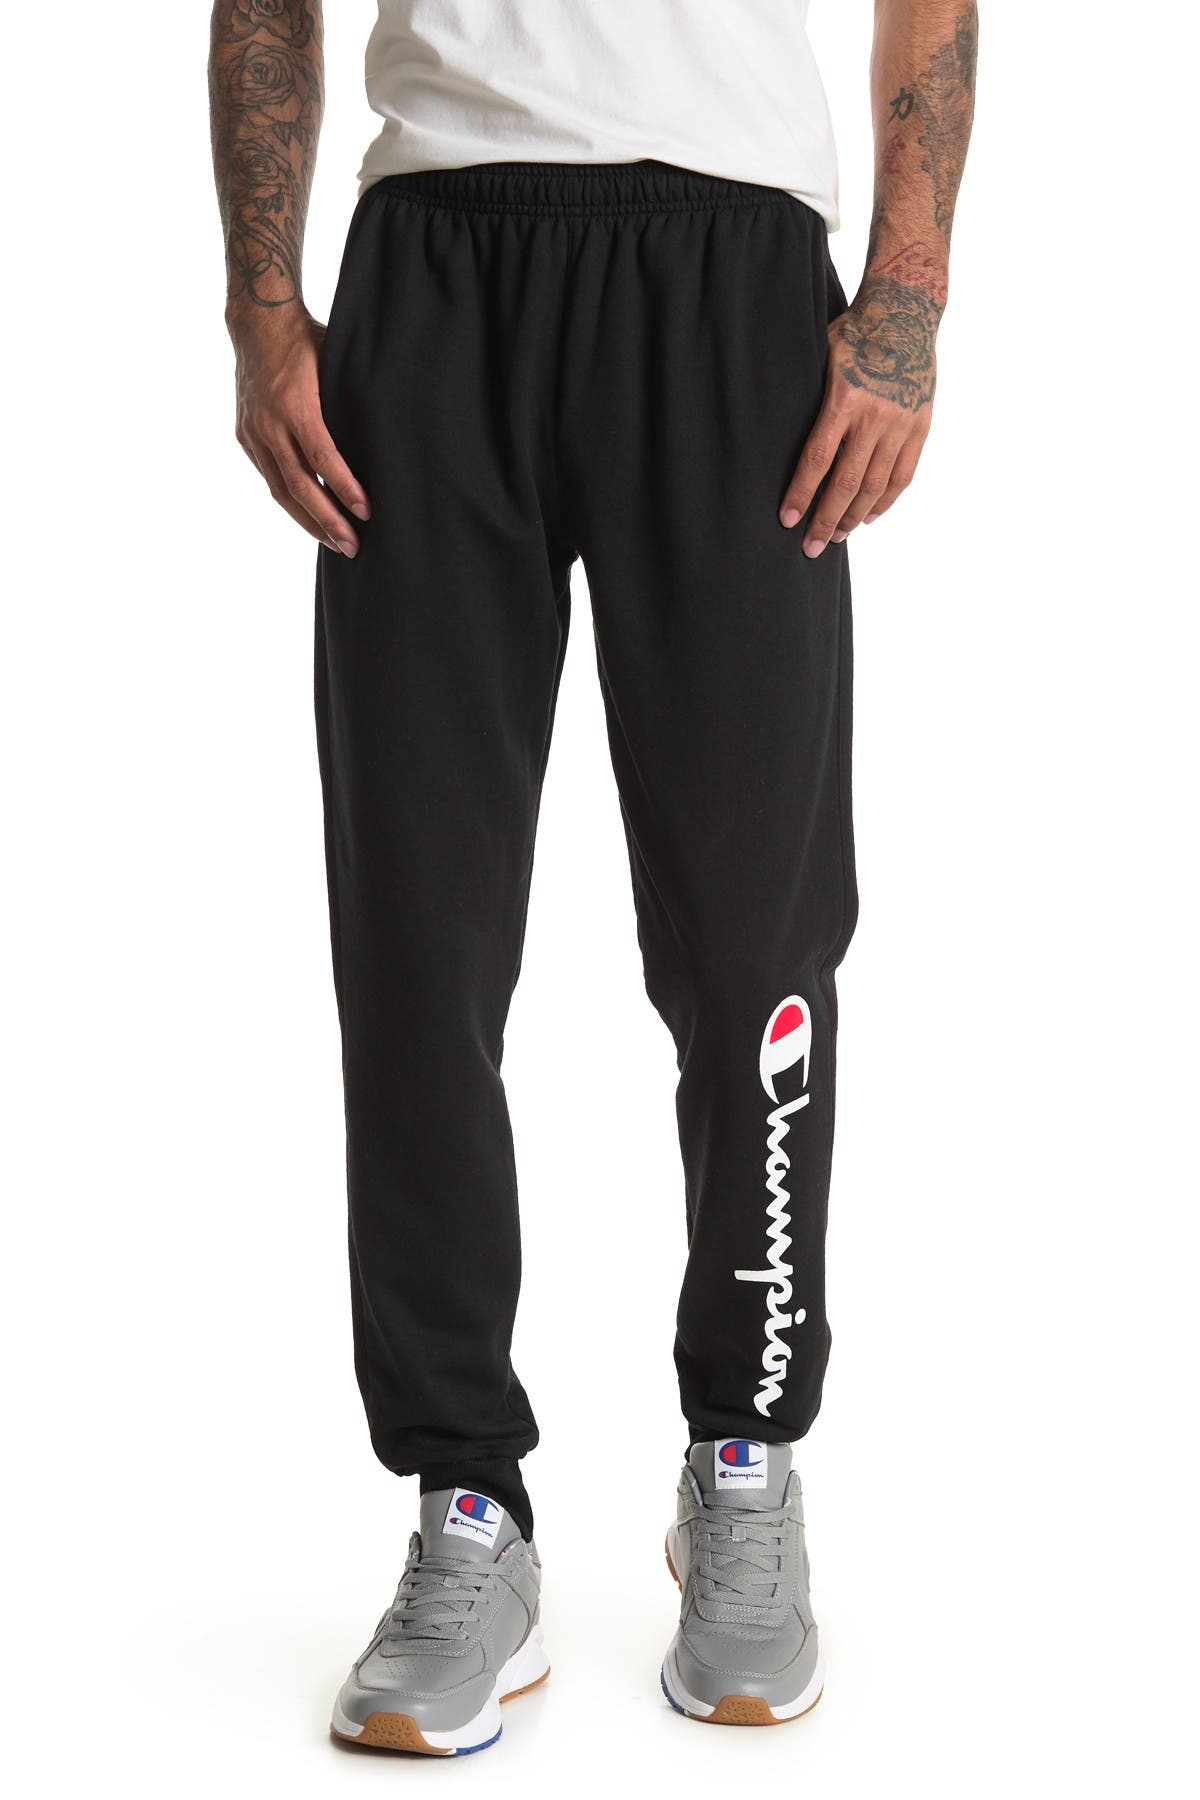 Image of Champion Powerblend Logo Sweatpants